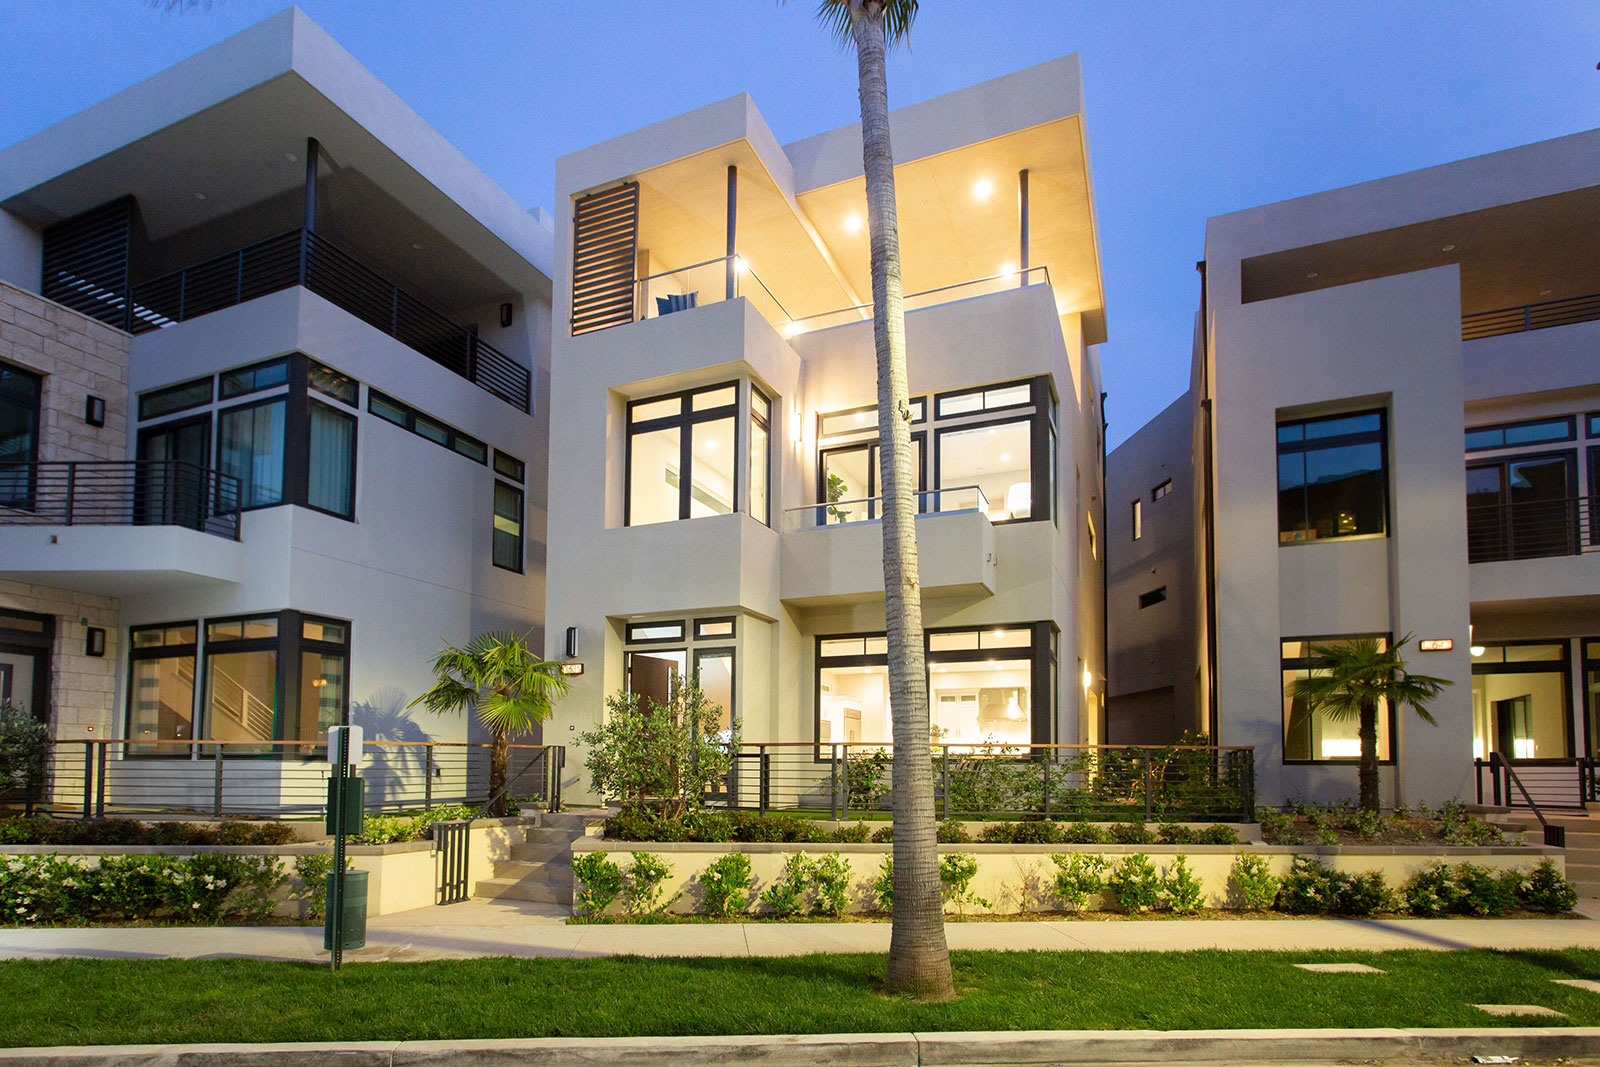 playa vista home